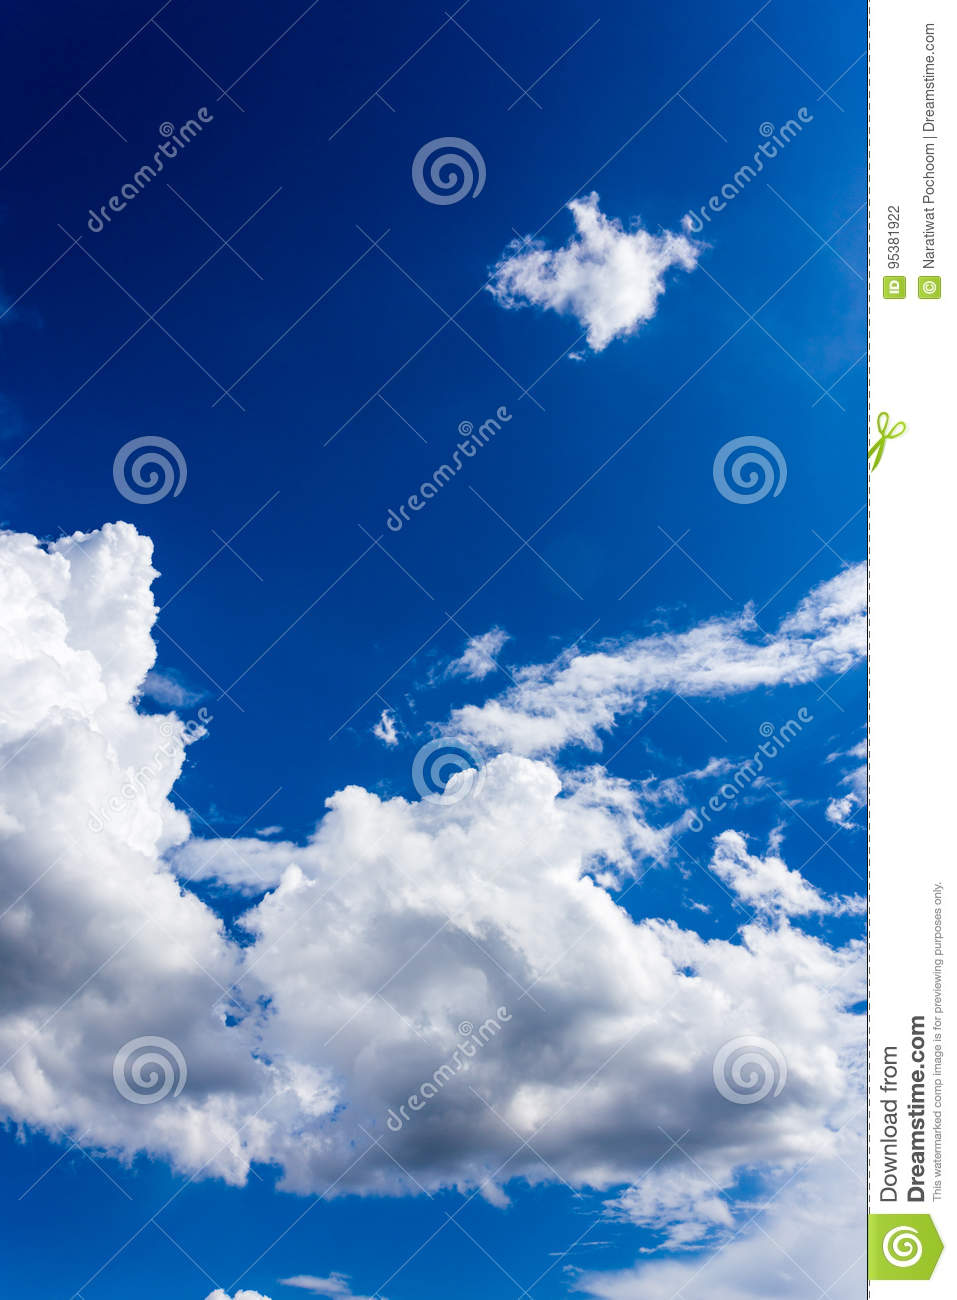 blue sky with clouds background wallpapers stock photo - image of